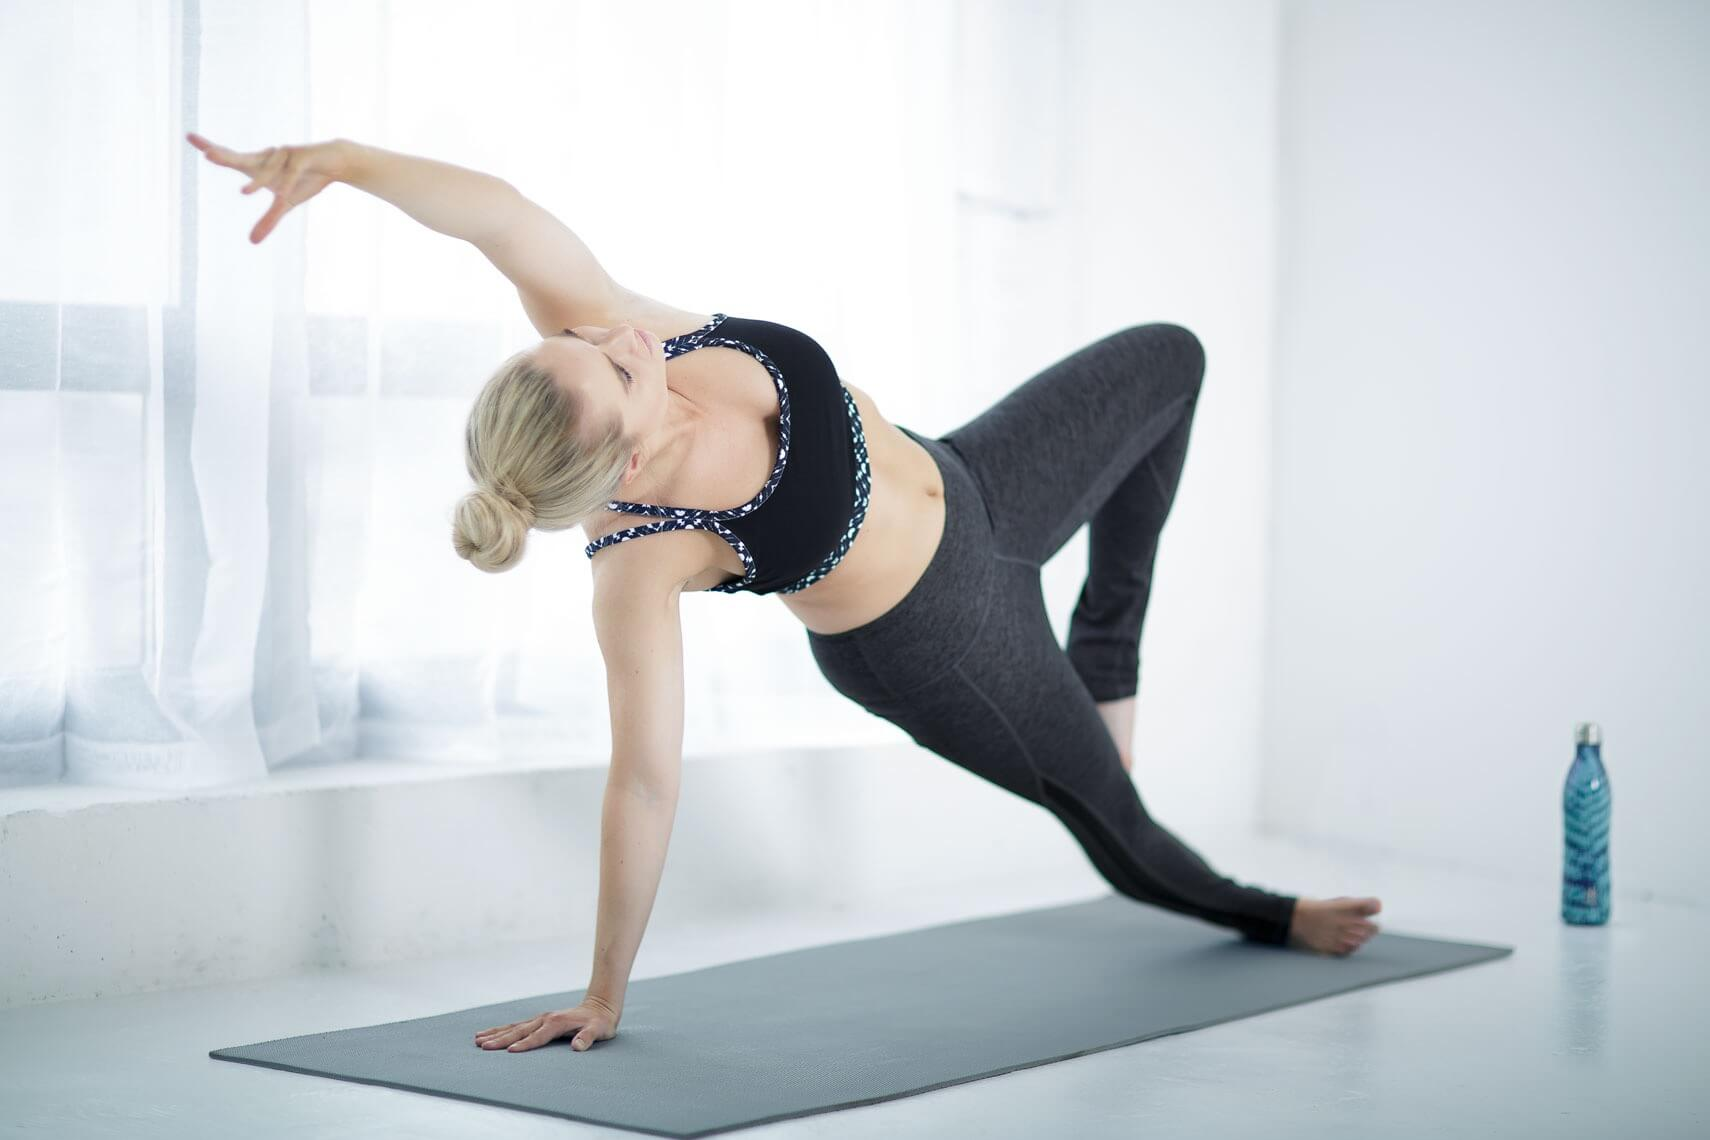 45 Gorgeous Yoga Poses and What You Can Learn From Them